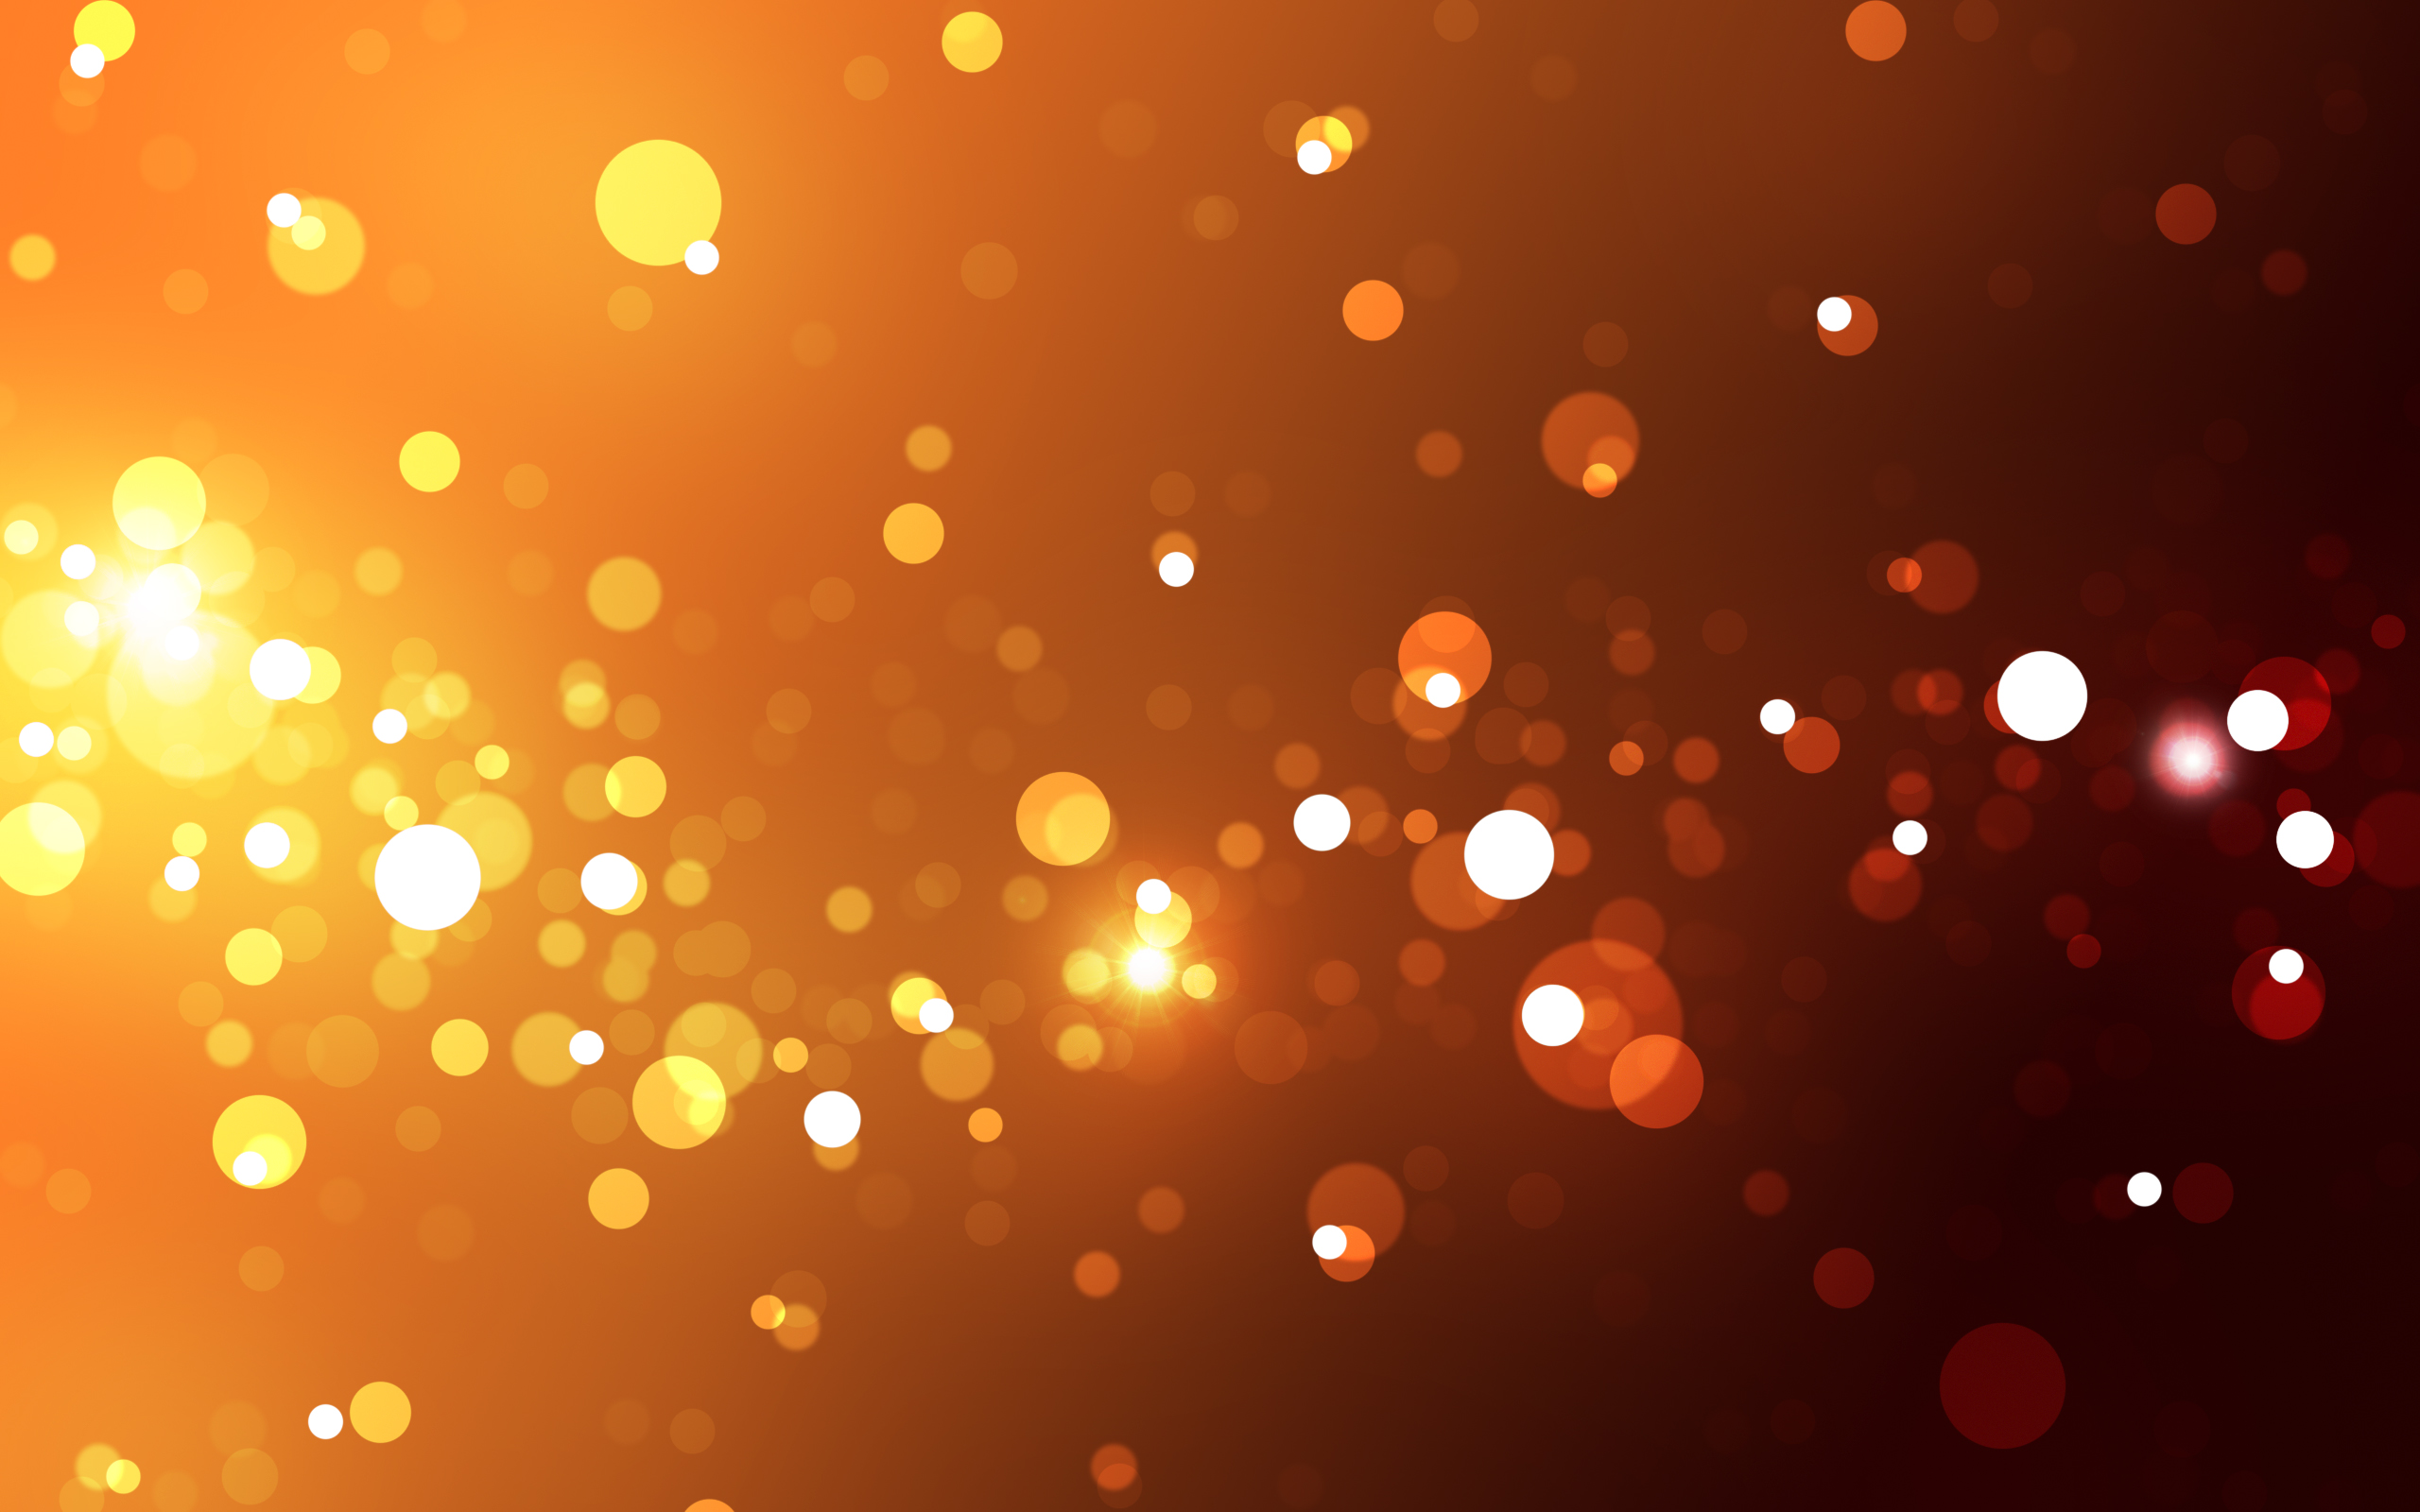 Abstract Lights Wallpaper 2560x1600 Abstract Lights Orange 2560x1600